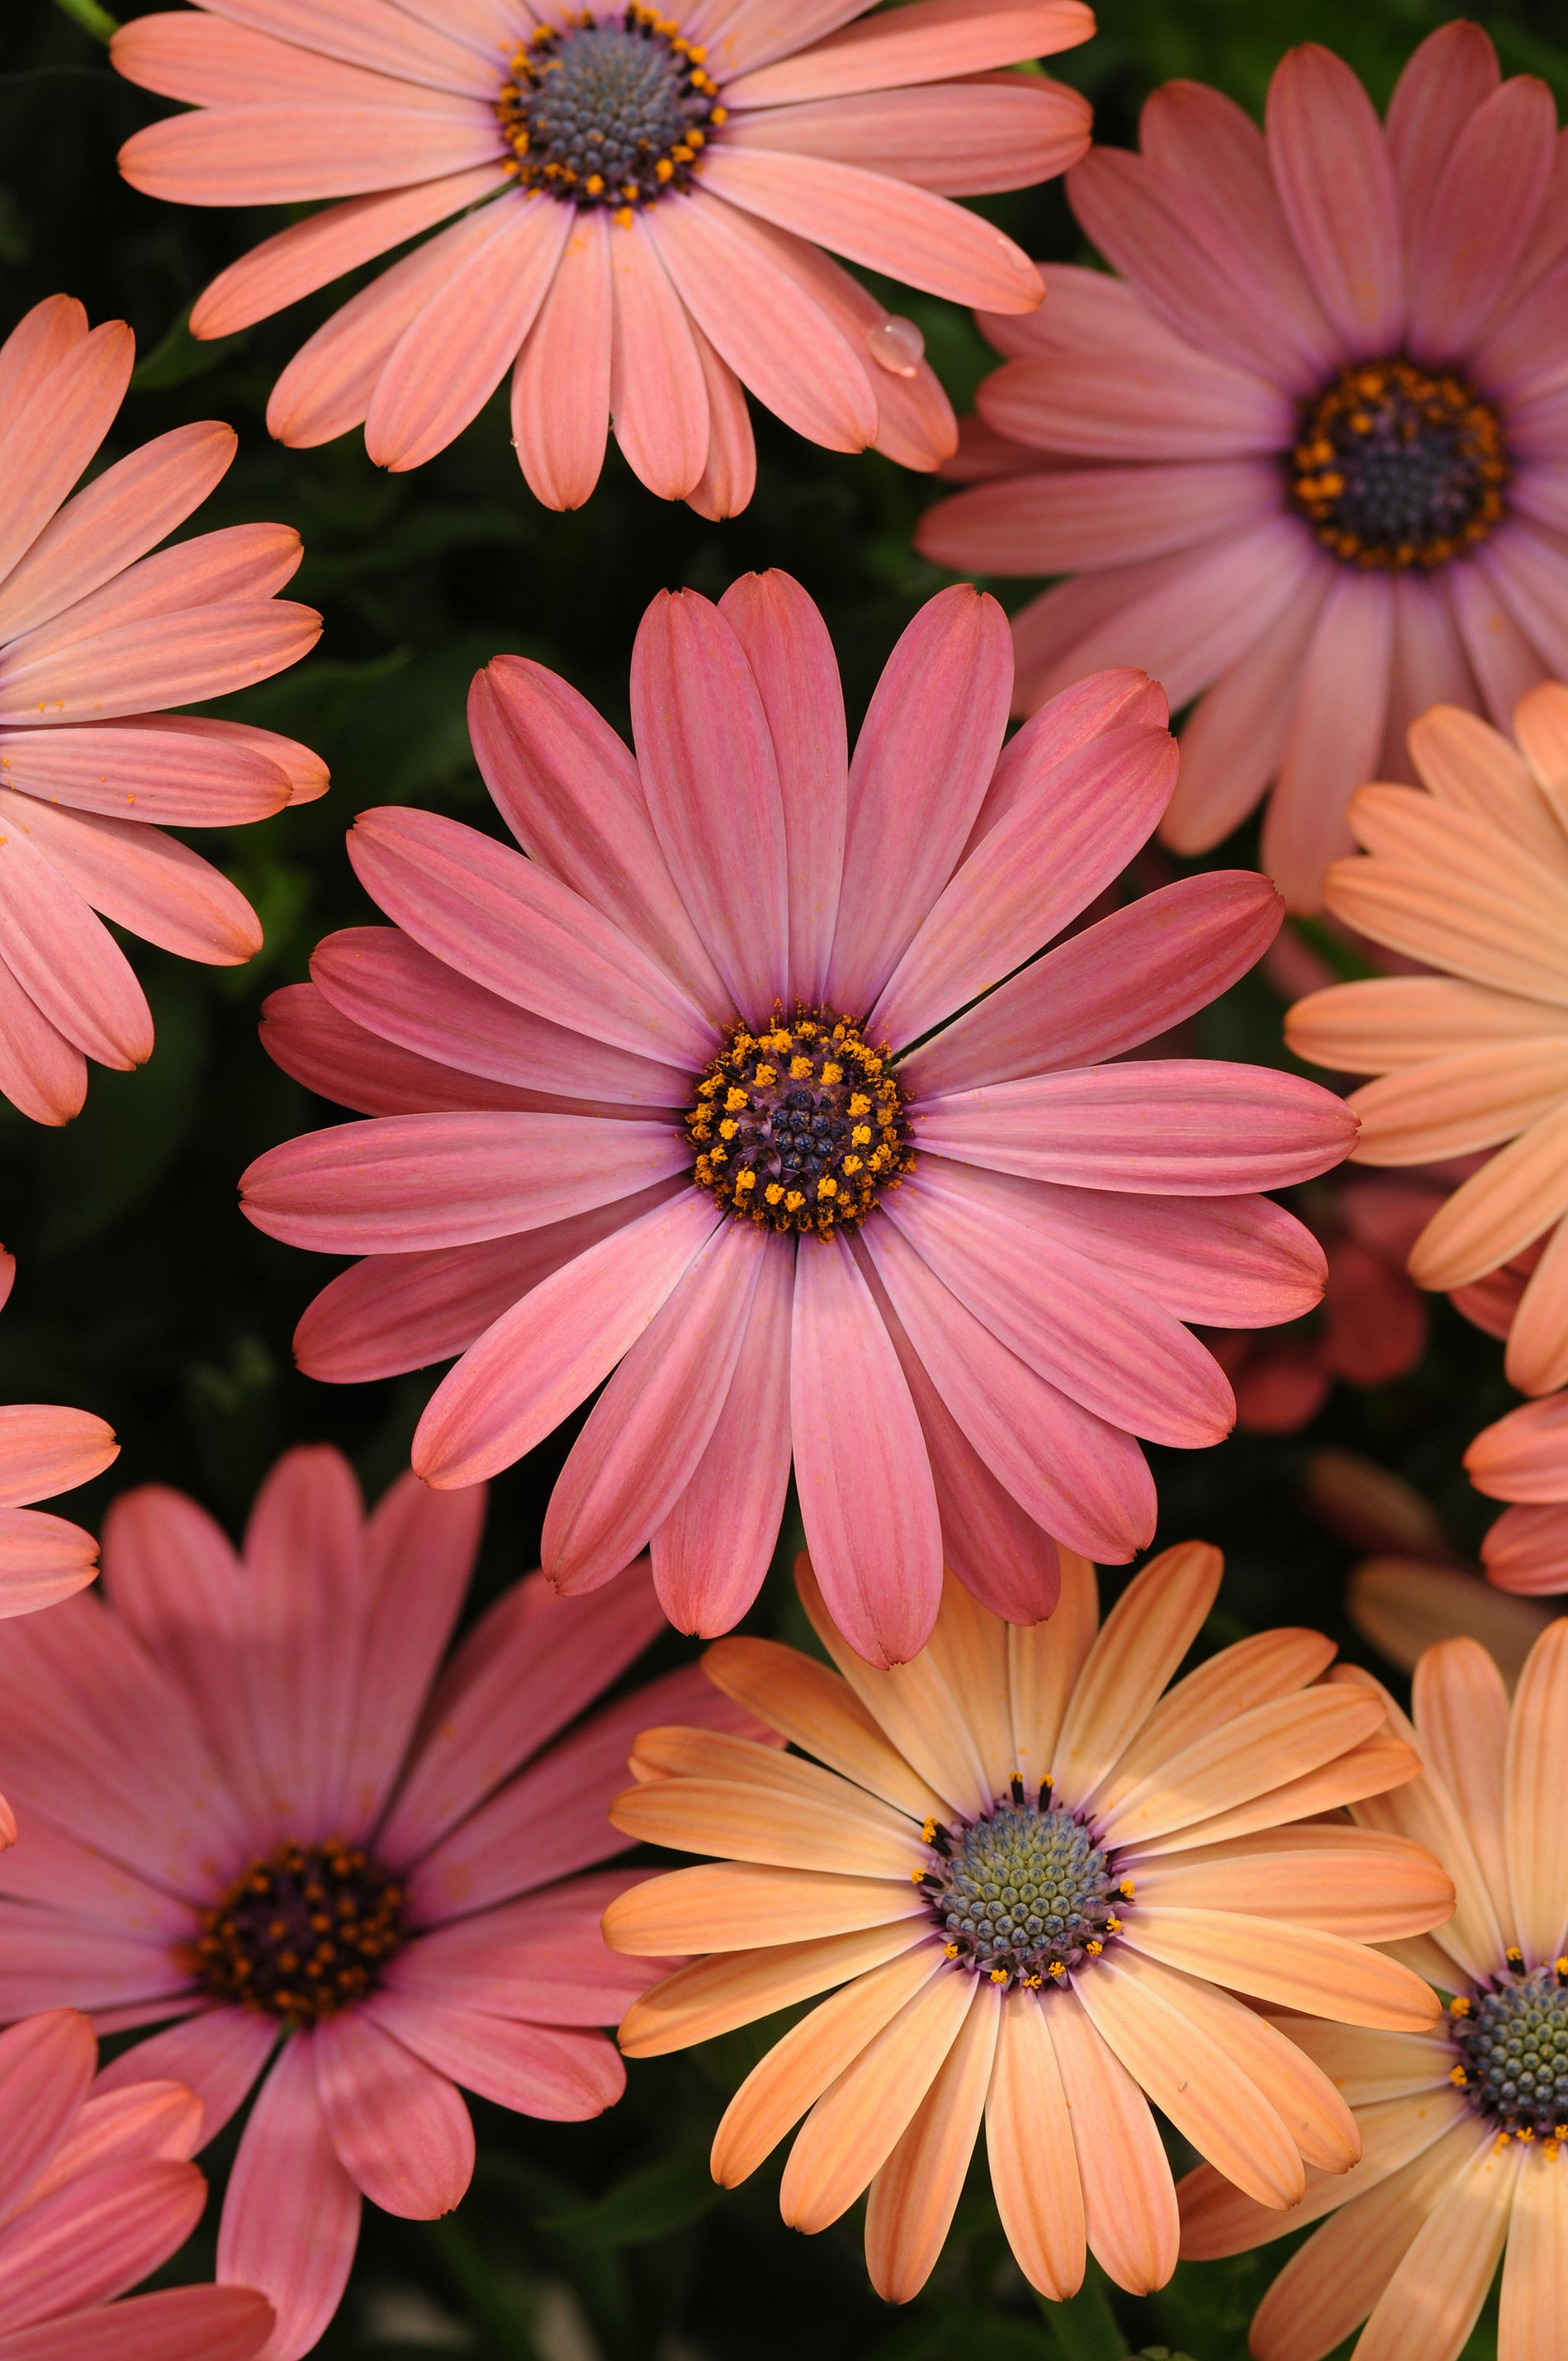 Osteospermum Serenity Rose Magic Ball Horticultural Co Spring